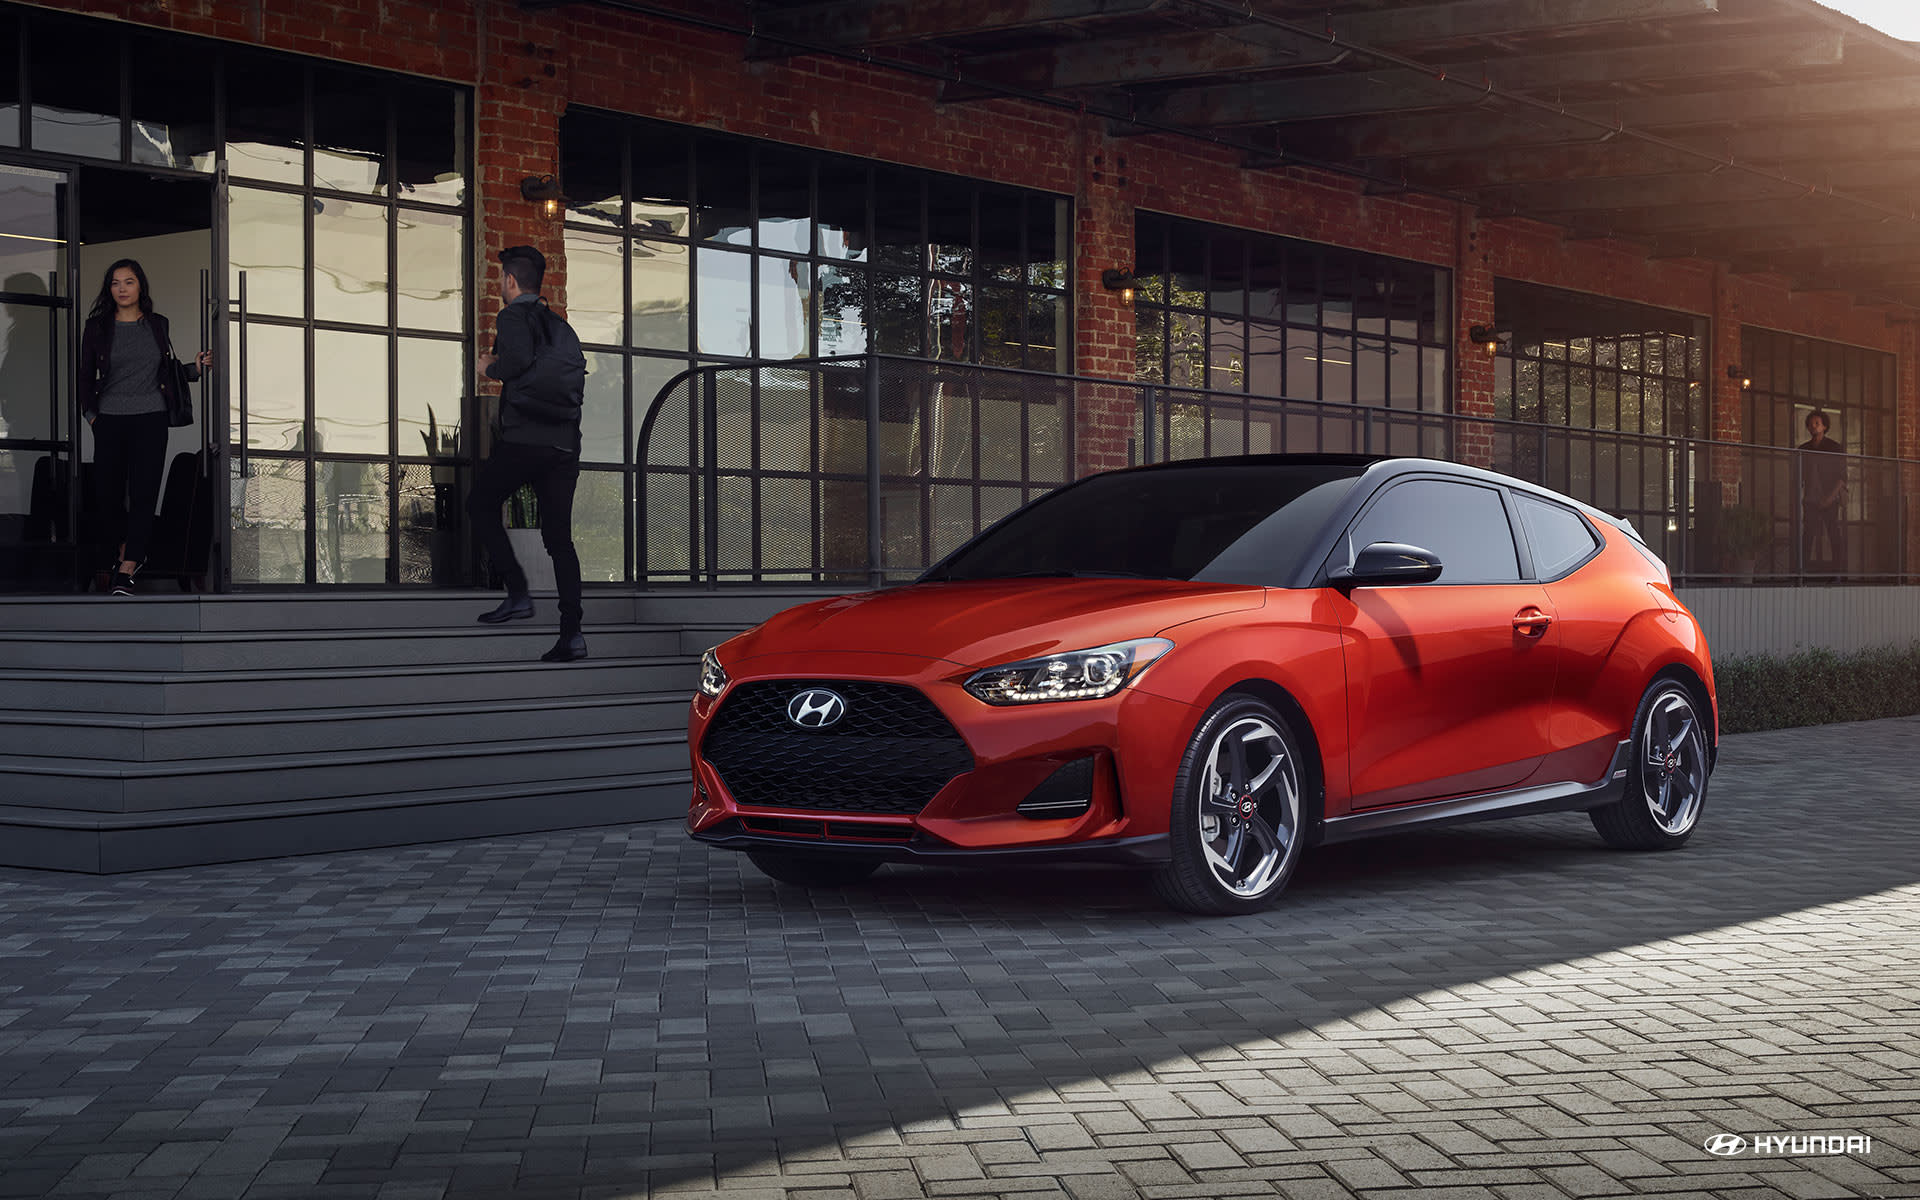 2019 Hyundai Veloster for Lease near Bowie, MD